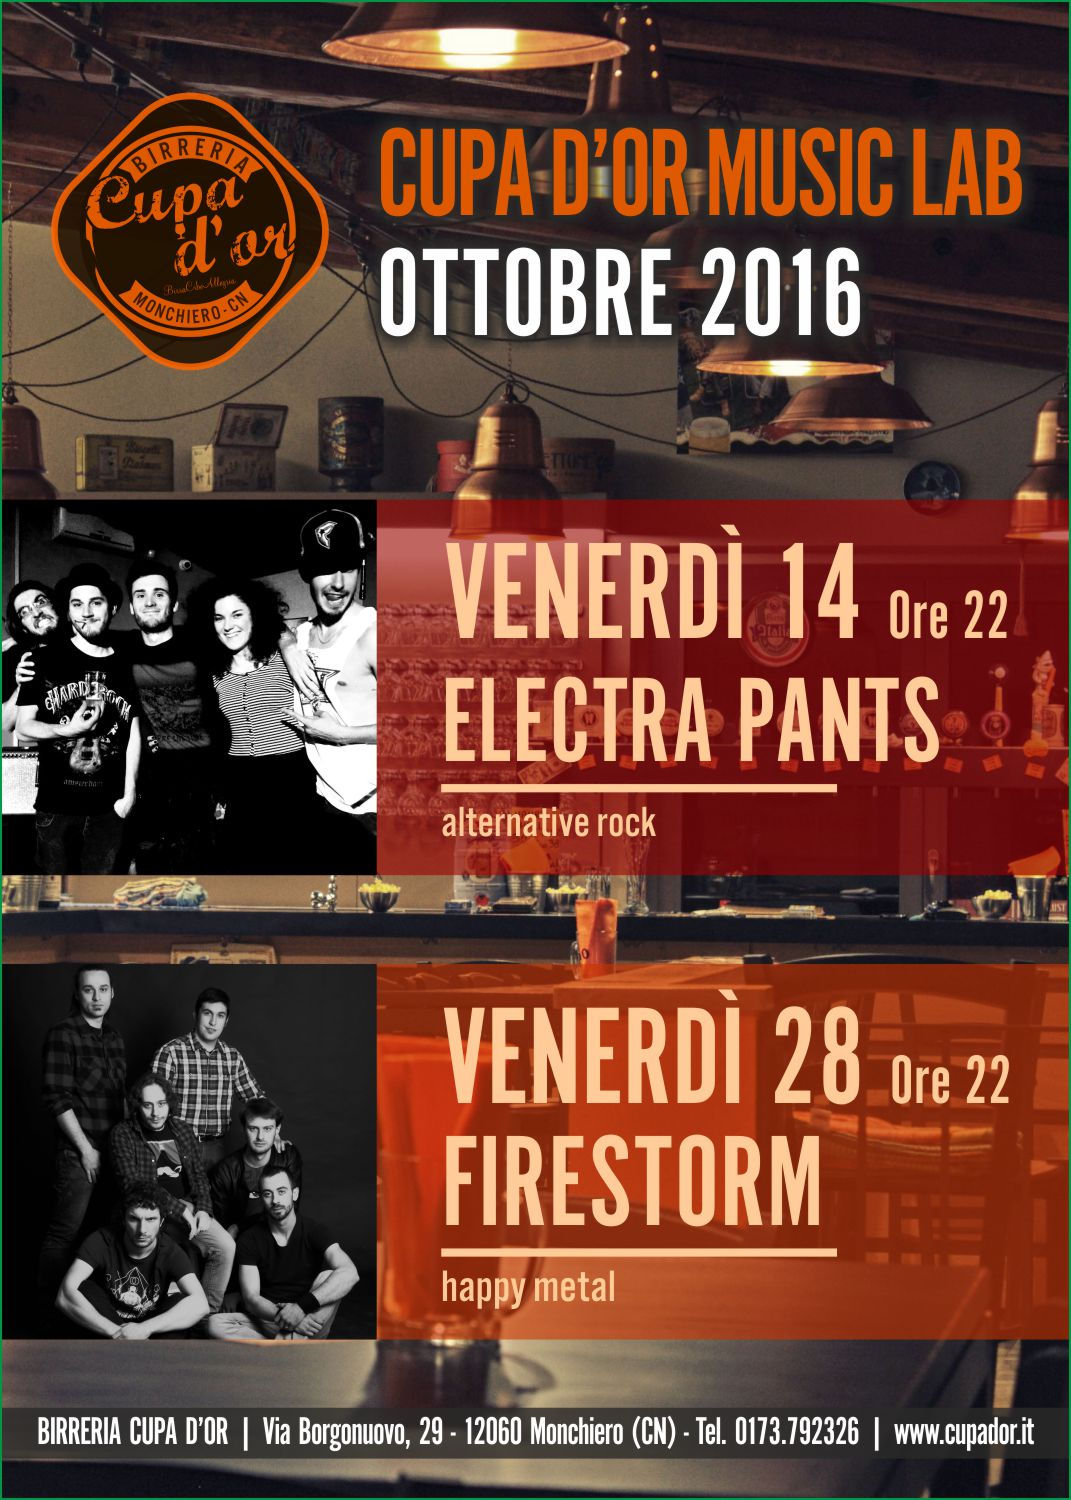 CUPA D'OR MUSIC LAB – OTTOBRE 2016